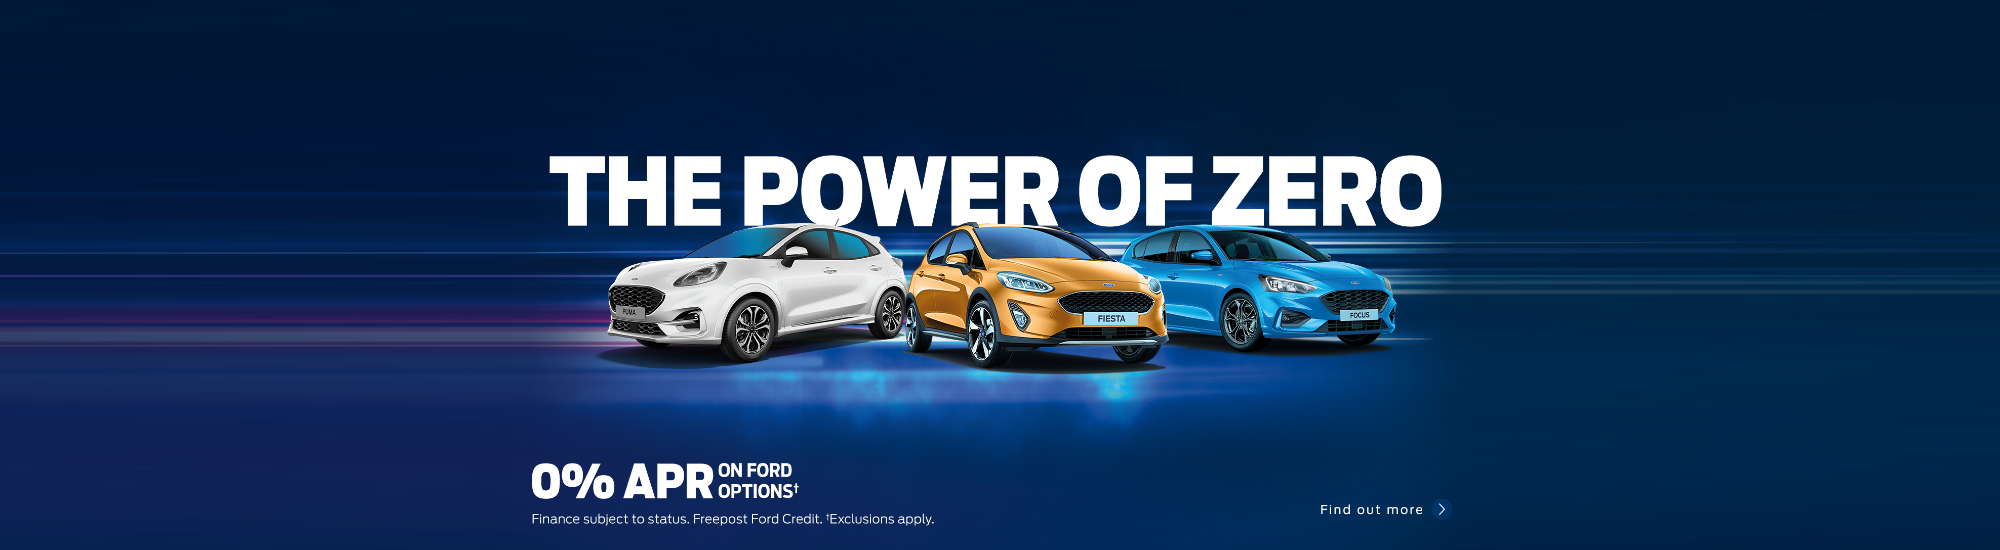 Power of Zero Ford Offer